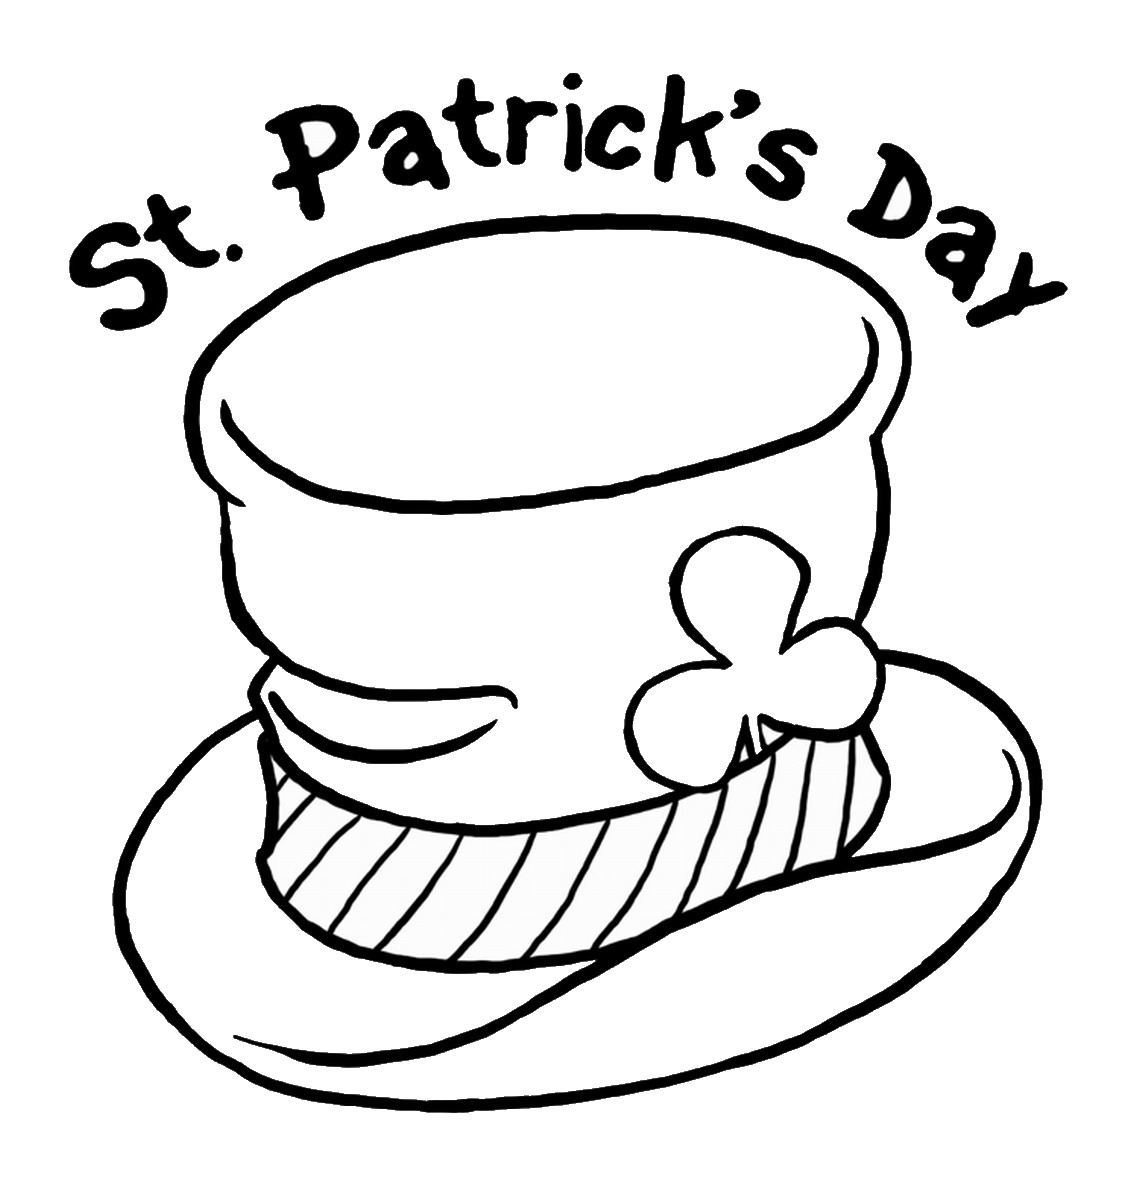 st patricks day coloring pages st patrick39s day coloring pages for childrens printable coloring st day patricks pages